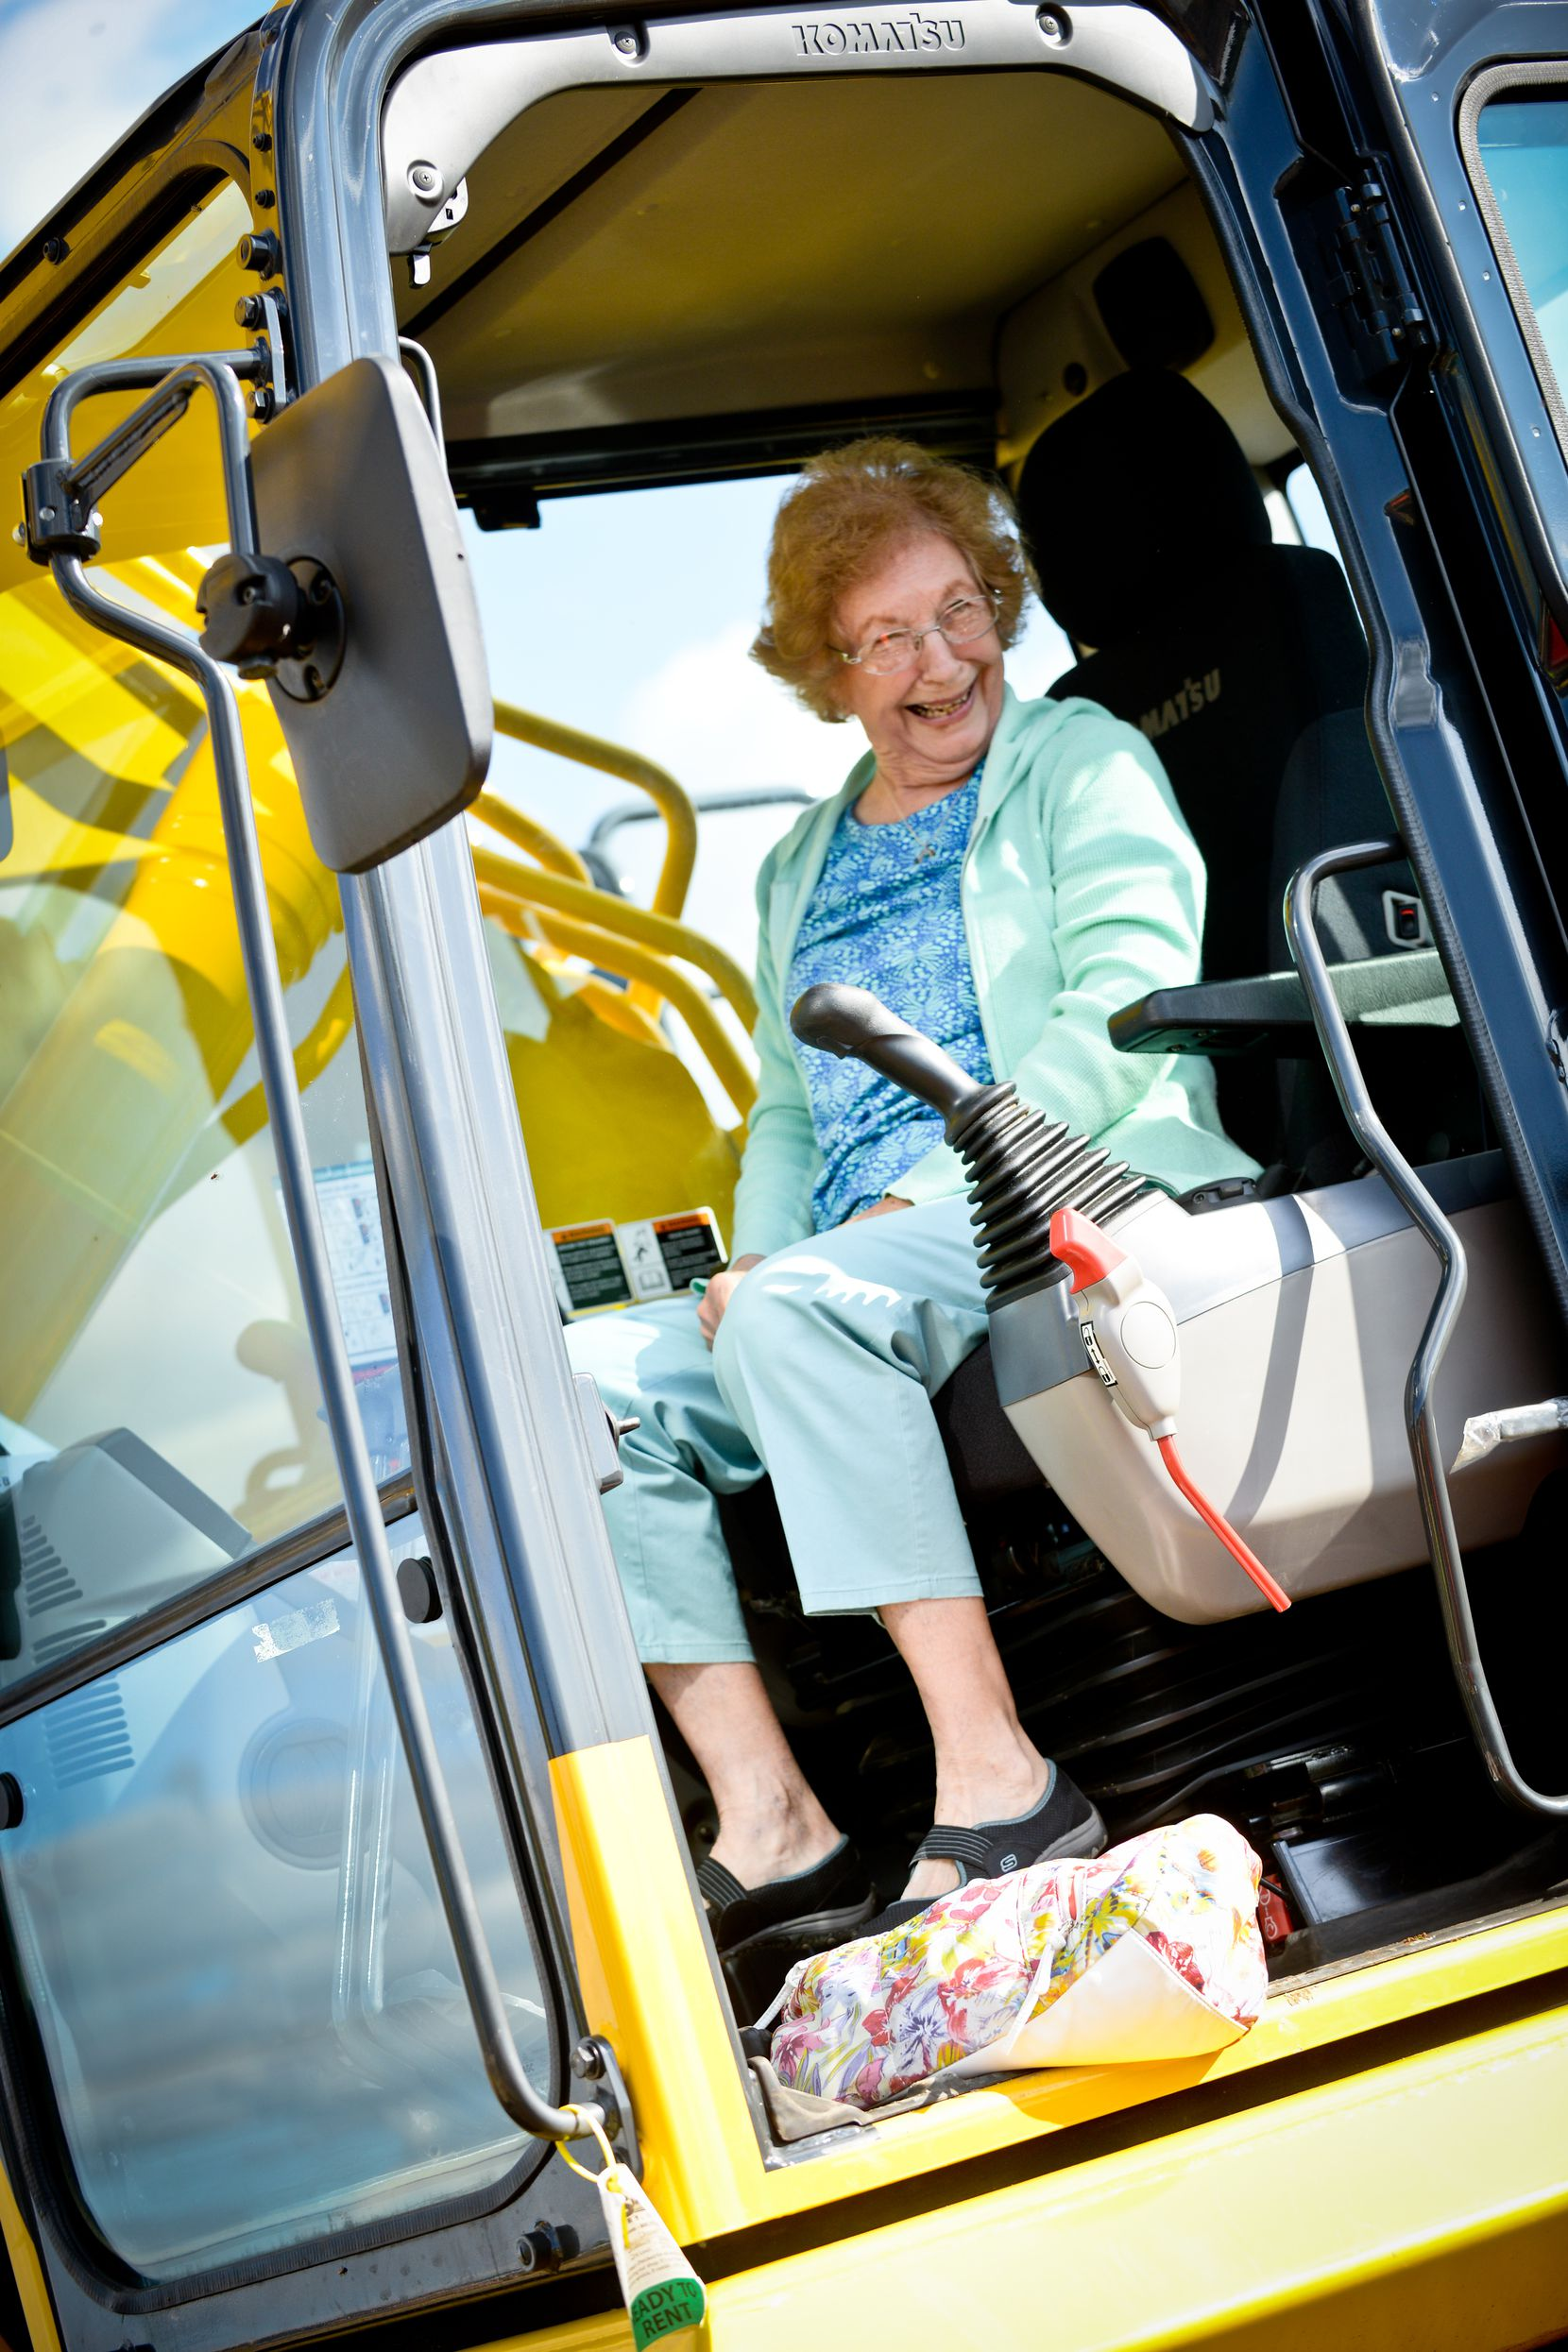 Guests at Extreme Sandbox can take a spin in an excavator with the help of trained operators.